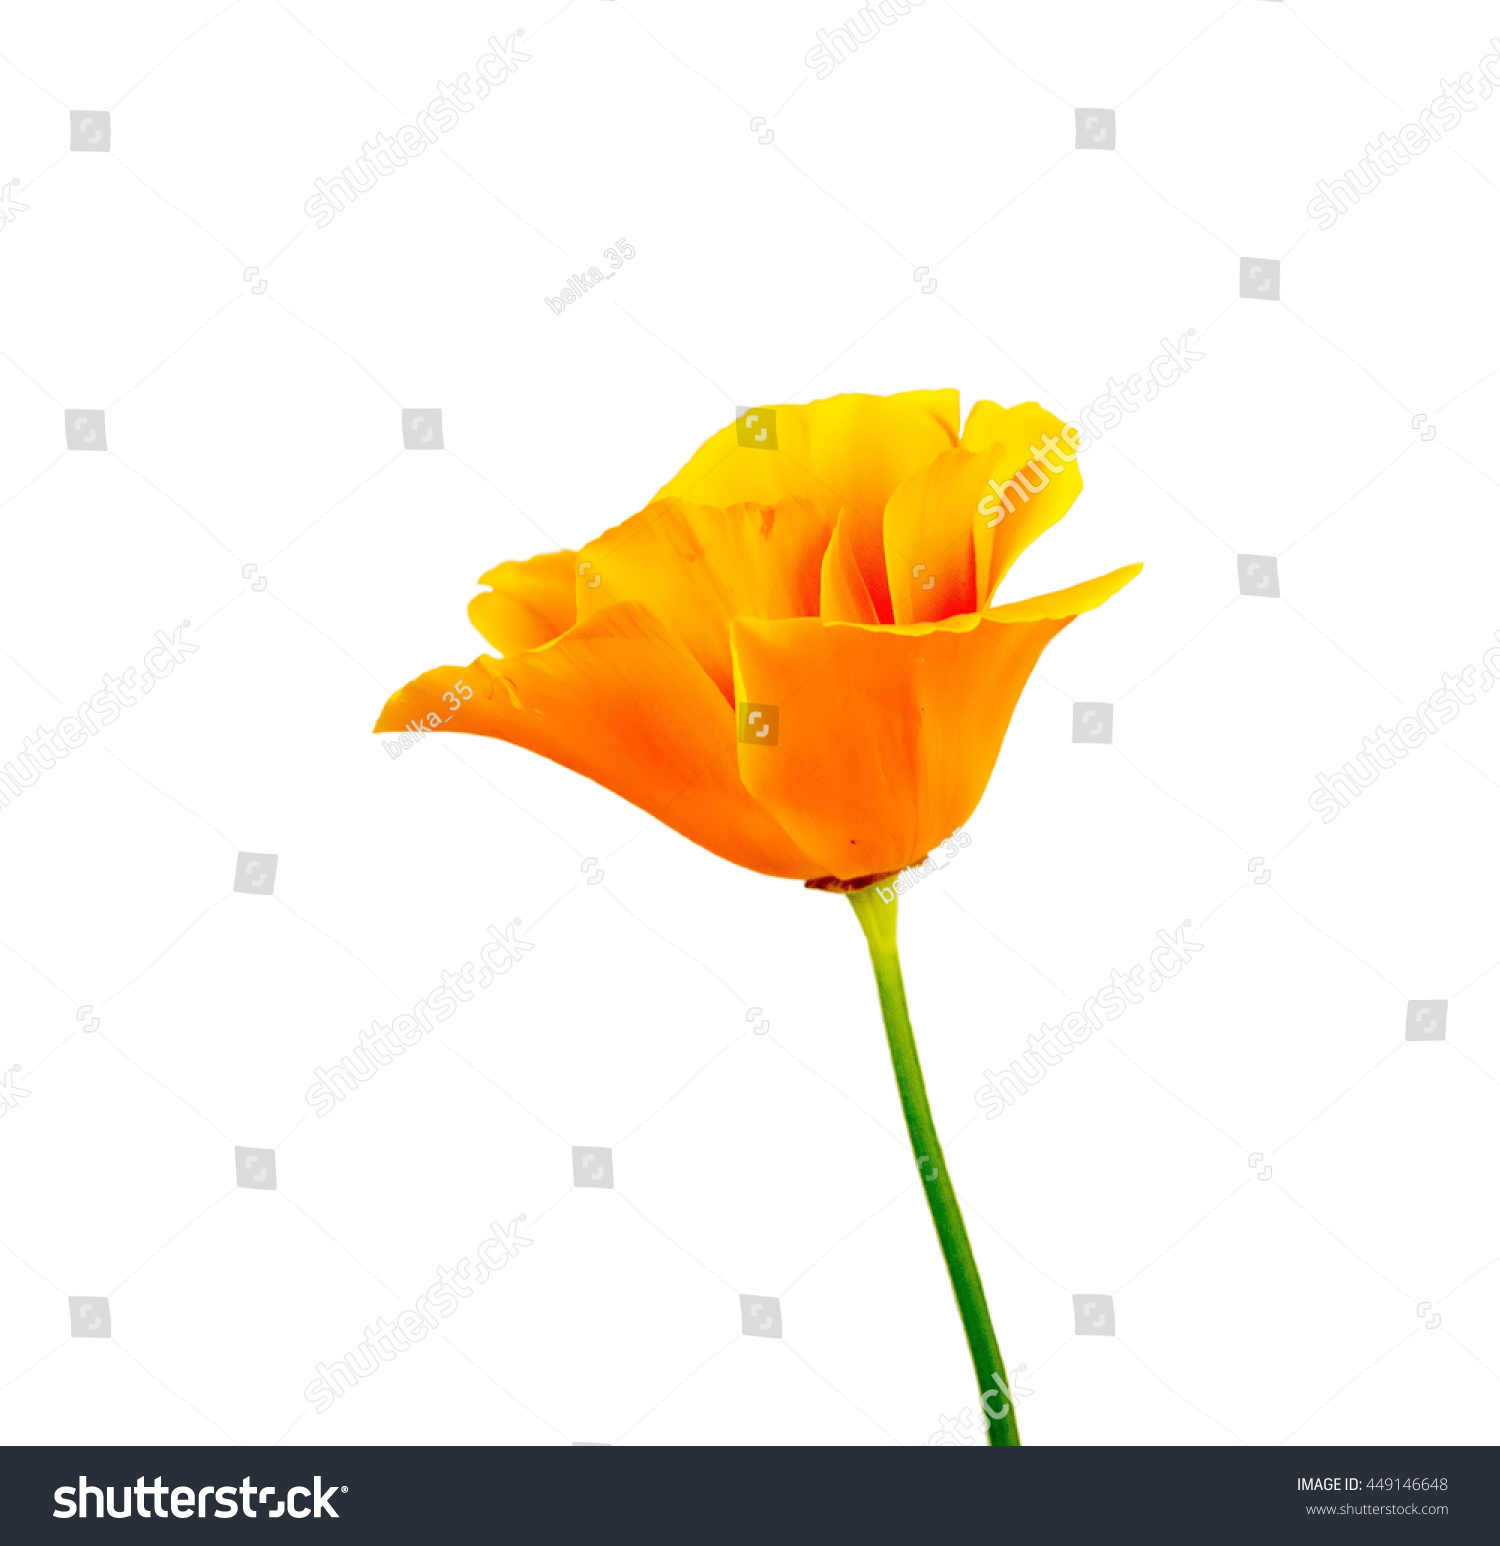 Beautiful flower poppy grows wild nature stock photo edit now the beautiful flower poppy grows in the wild nature sometimes grow up for receiving drug izmirmasajfo